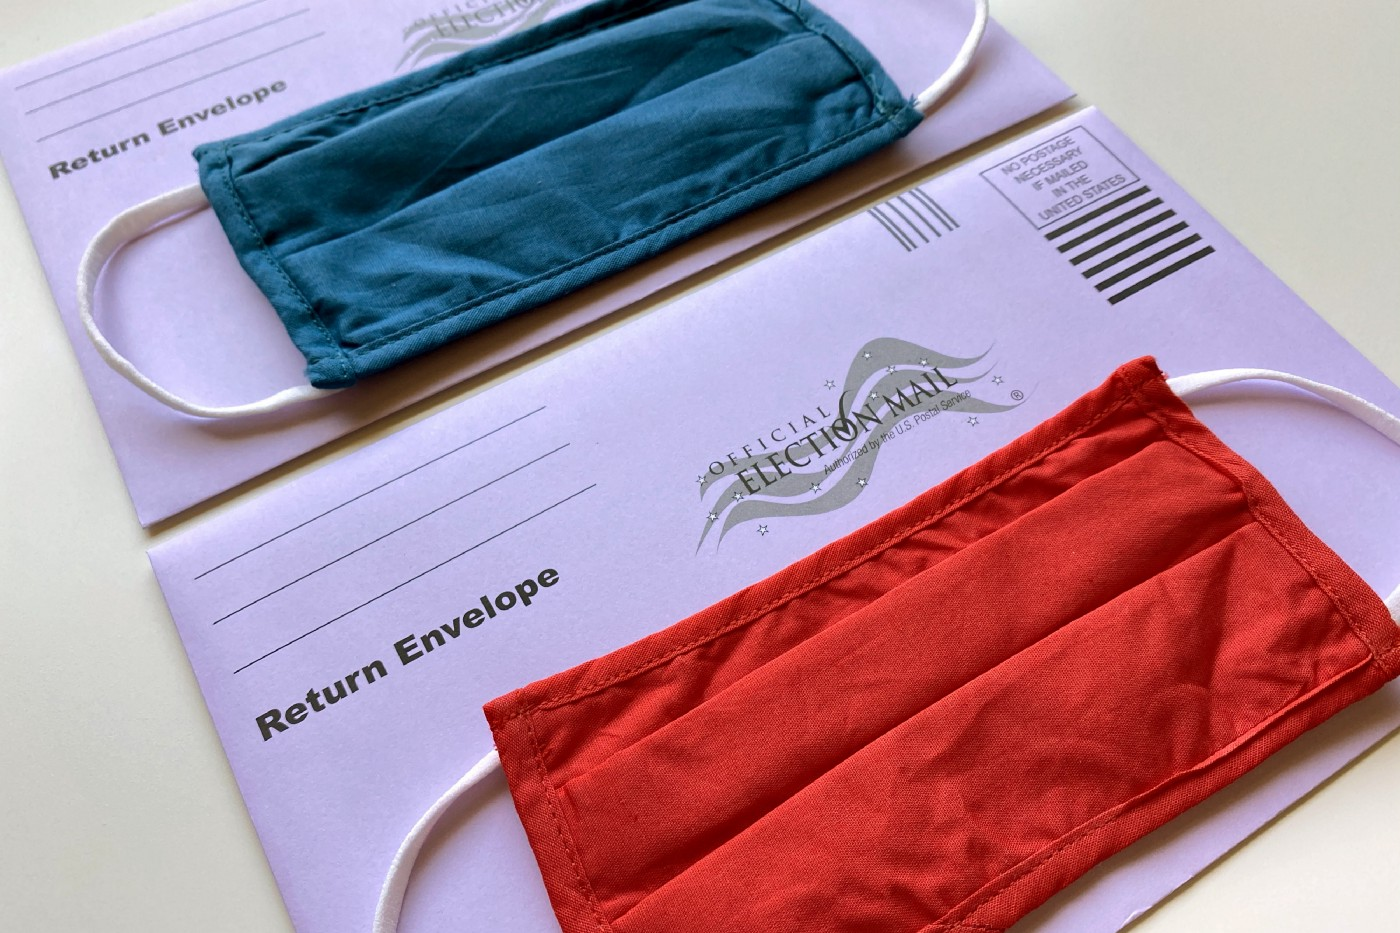 America's voting experience in 2020 will be unlike any other in history. Ballots shown with masks on top of the envelopes.